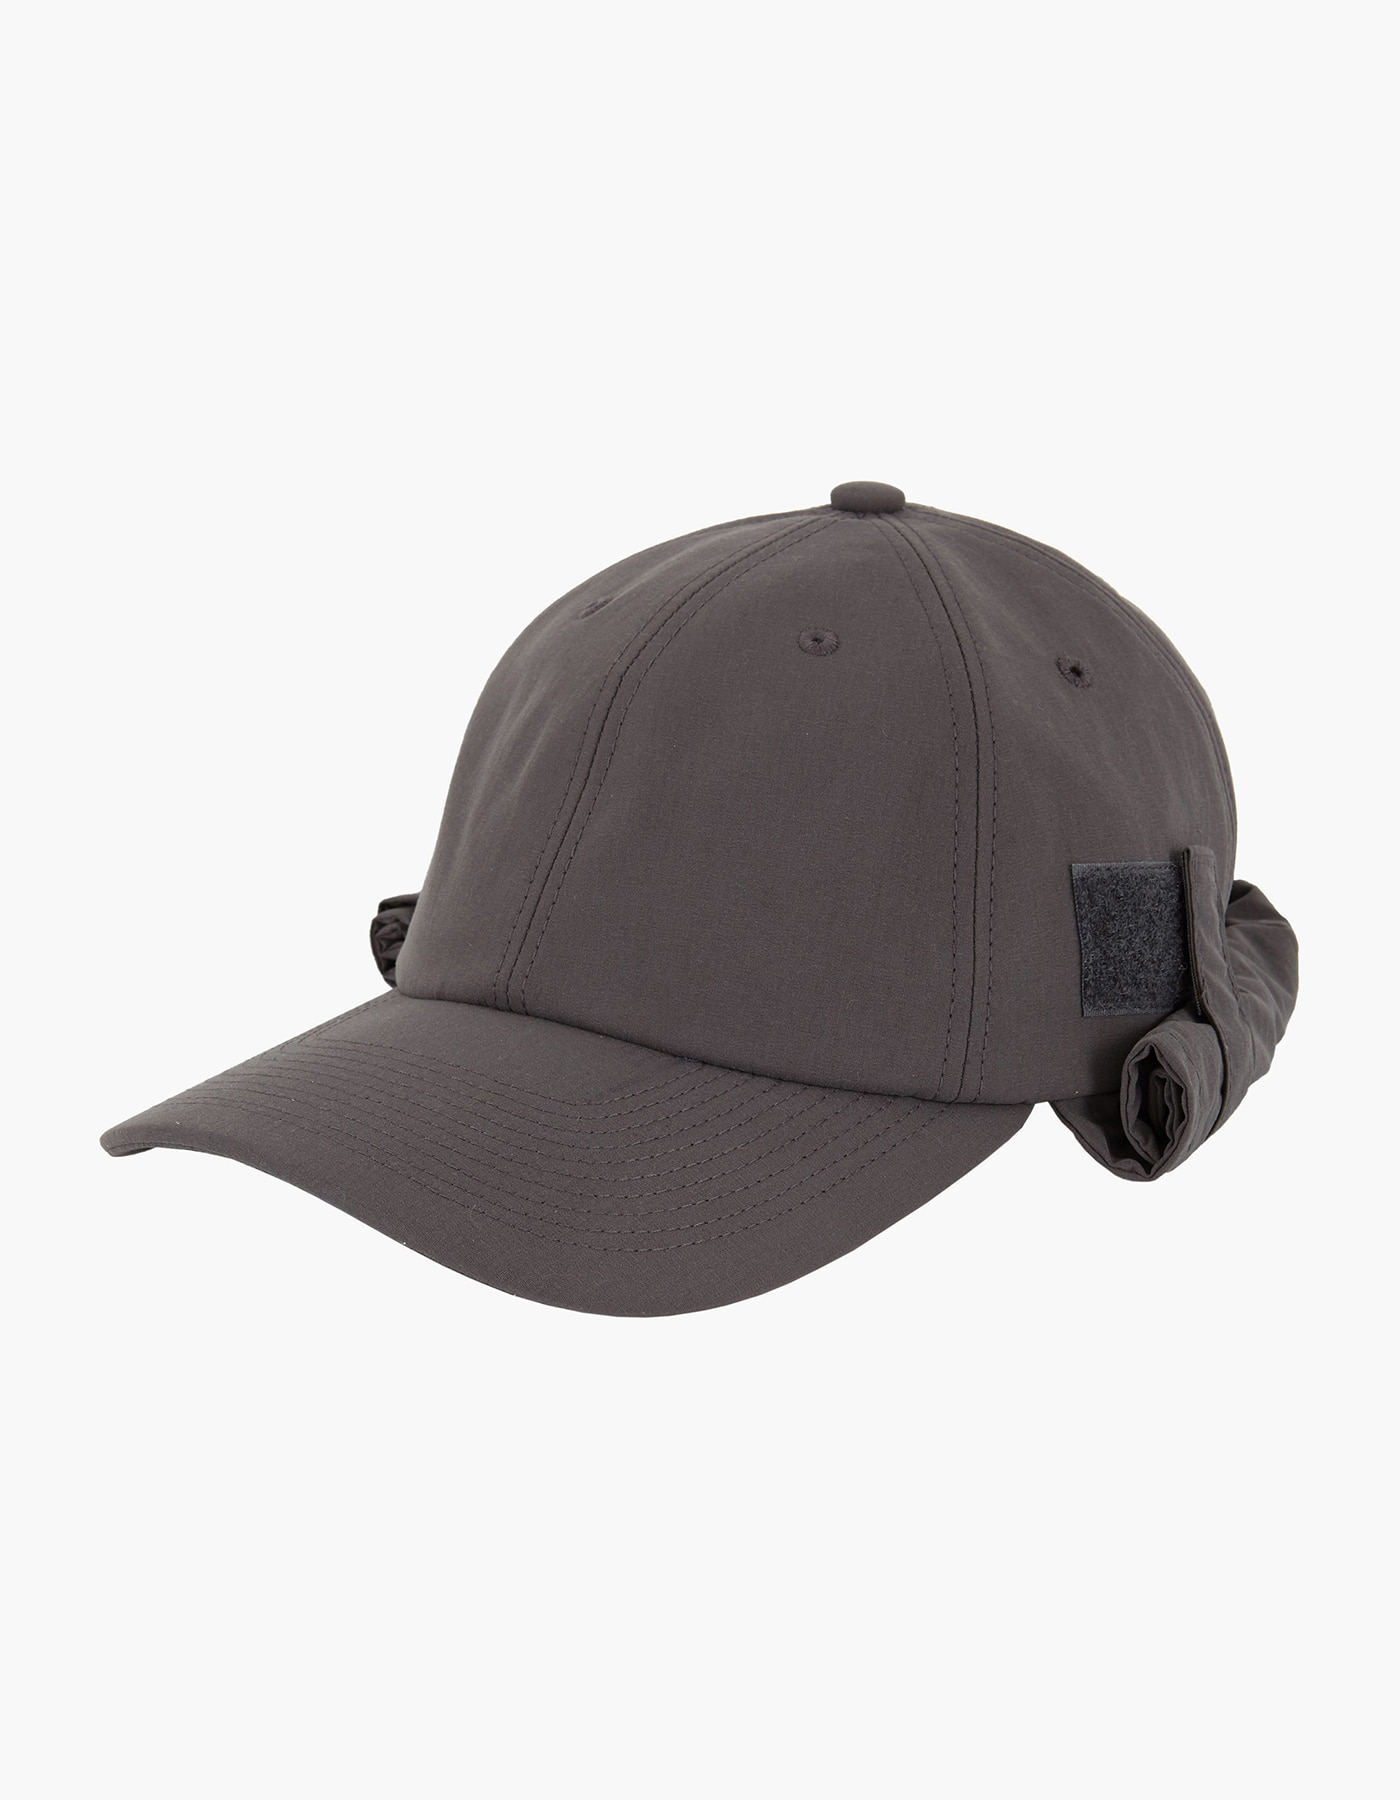 6 PANEL FLY FISHING CAP / CHARCOAL